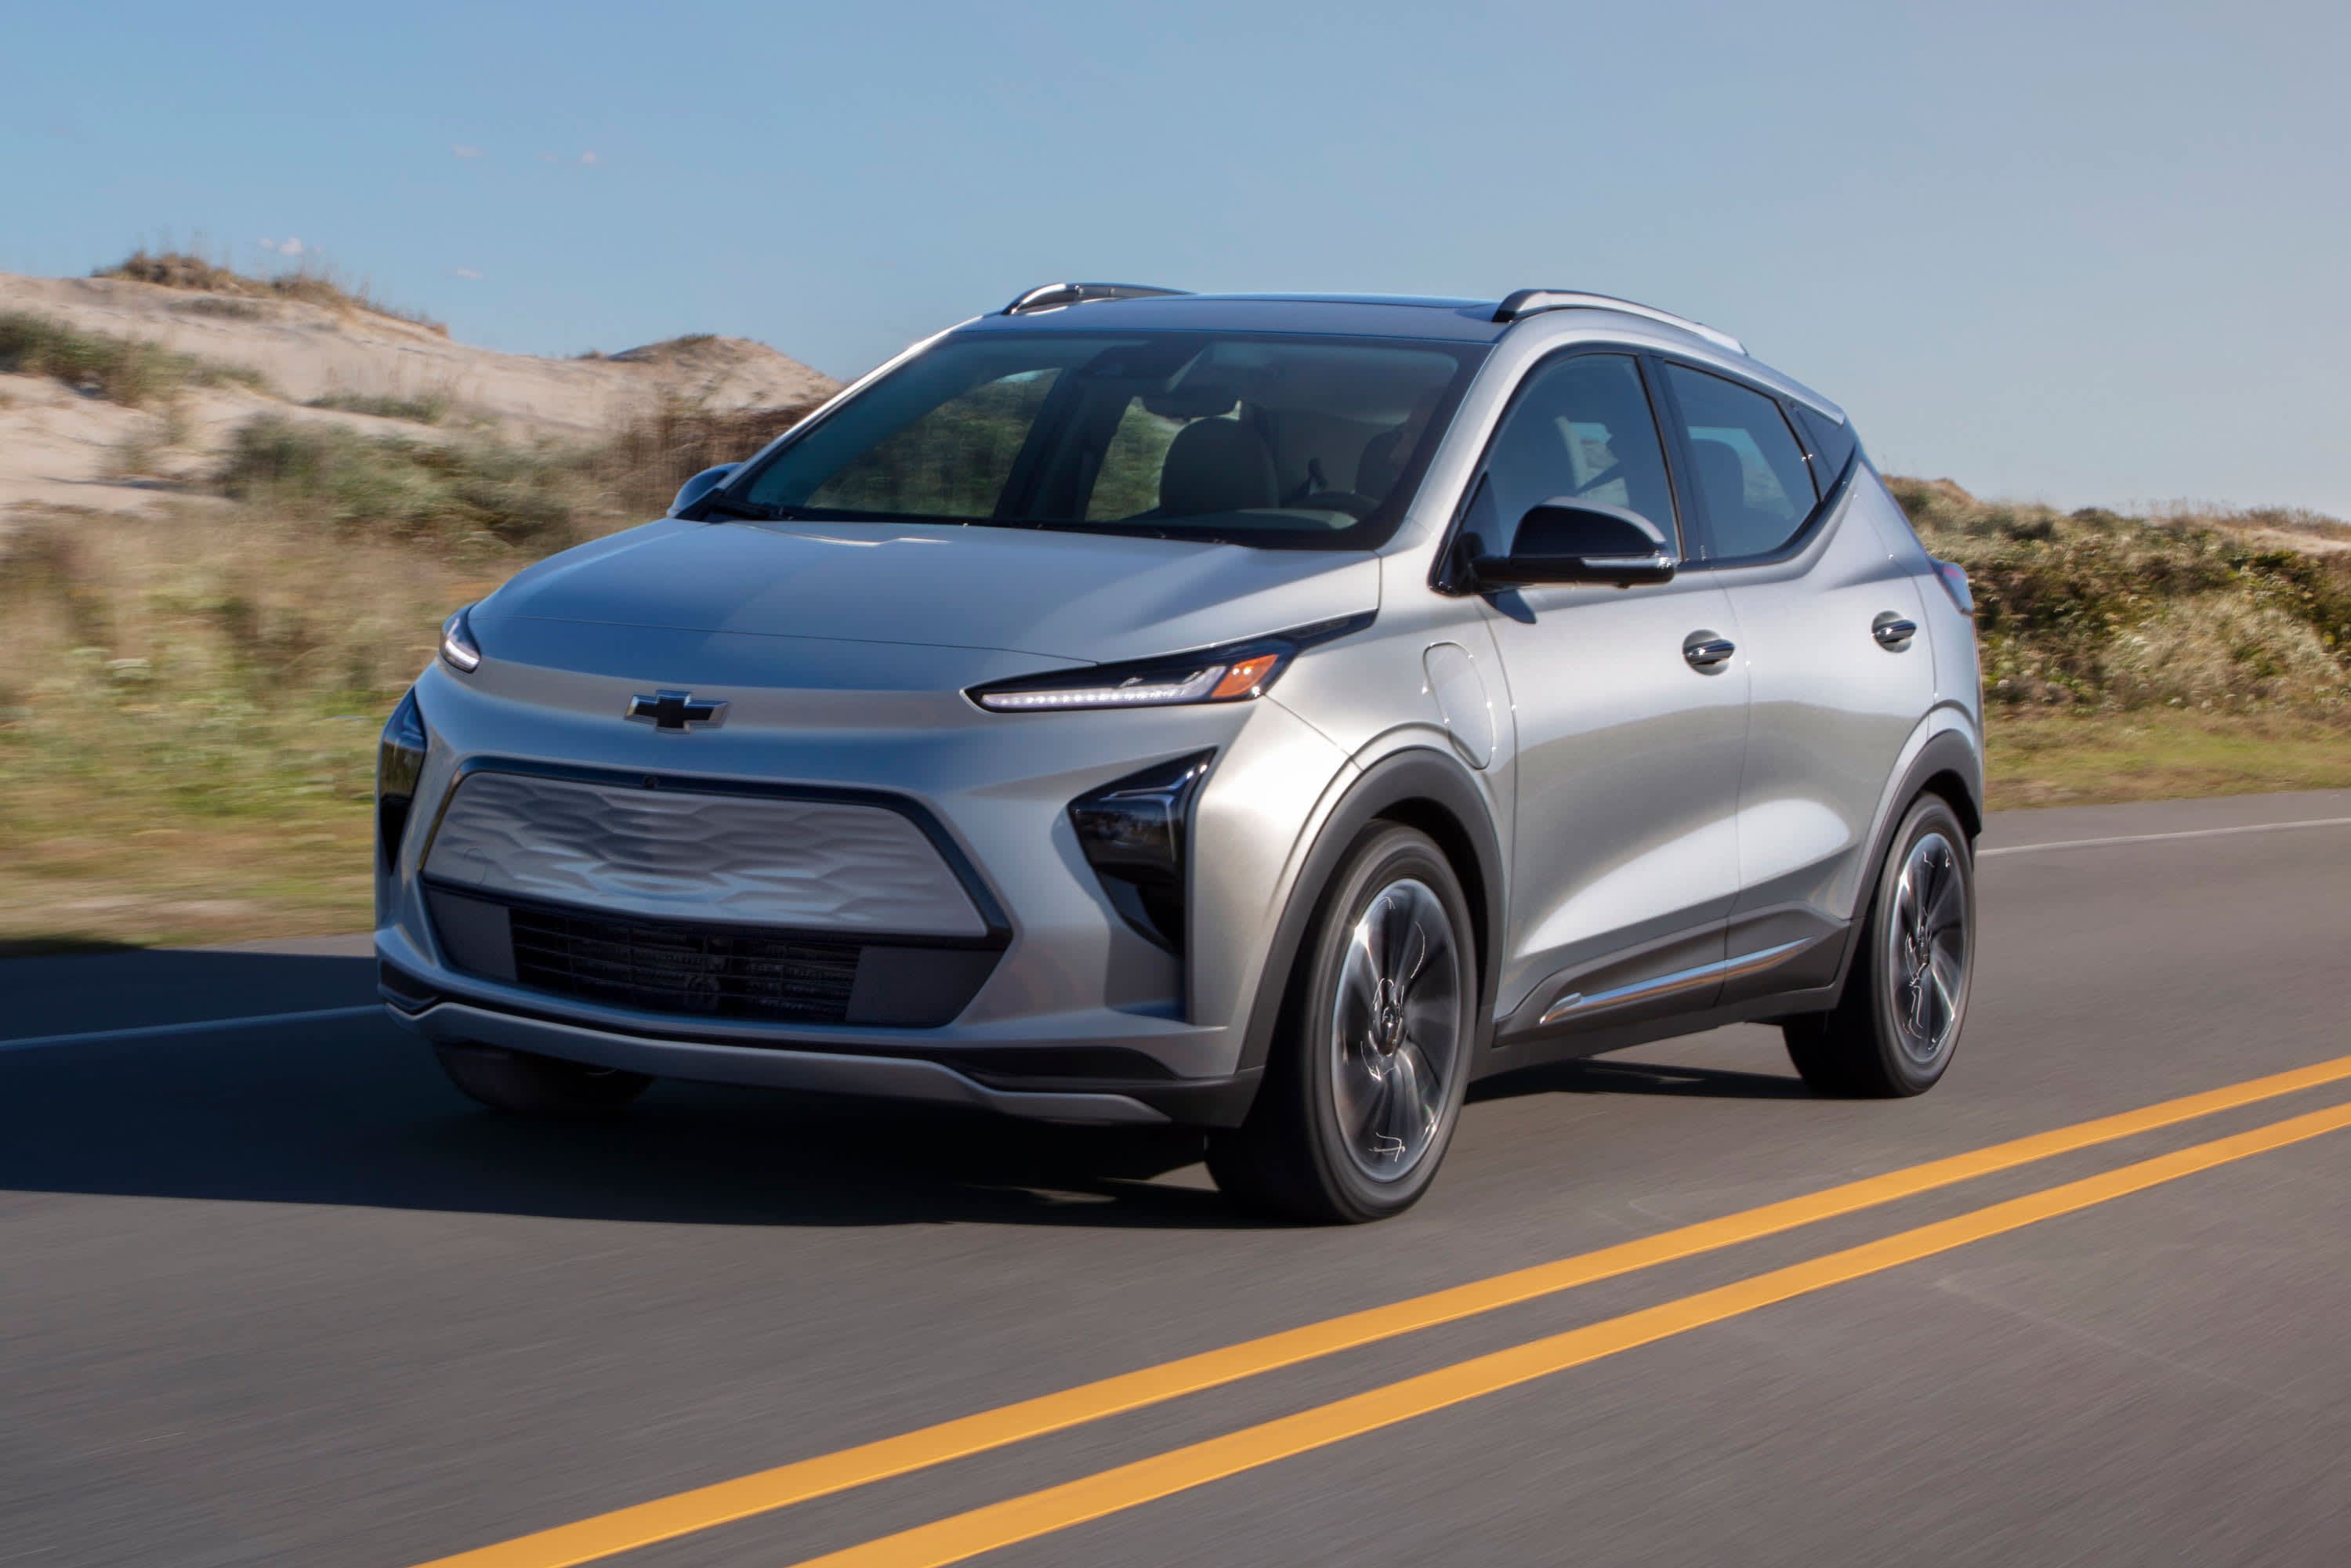 The 2022 Chevrolet Bolt EUV Is The Least Expensive EV To Hit The Market – Should Tesla Worry Yet?